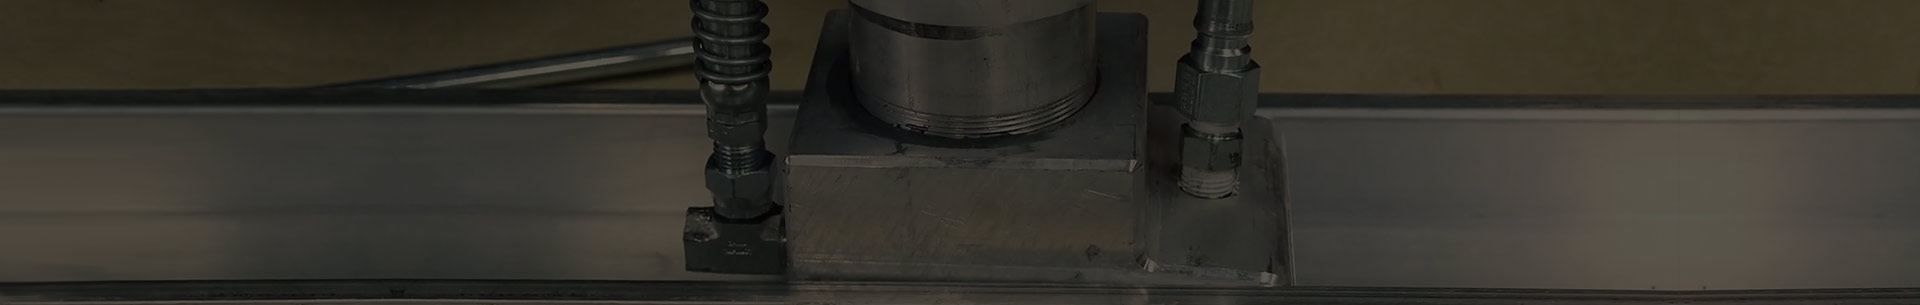 Shoring System Parts